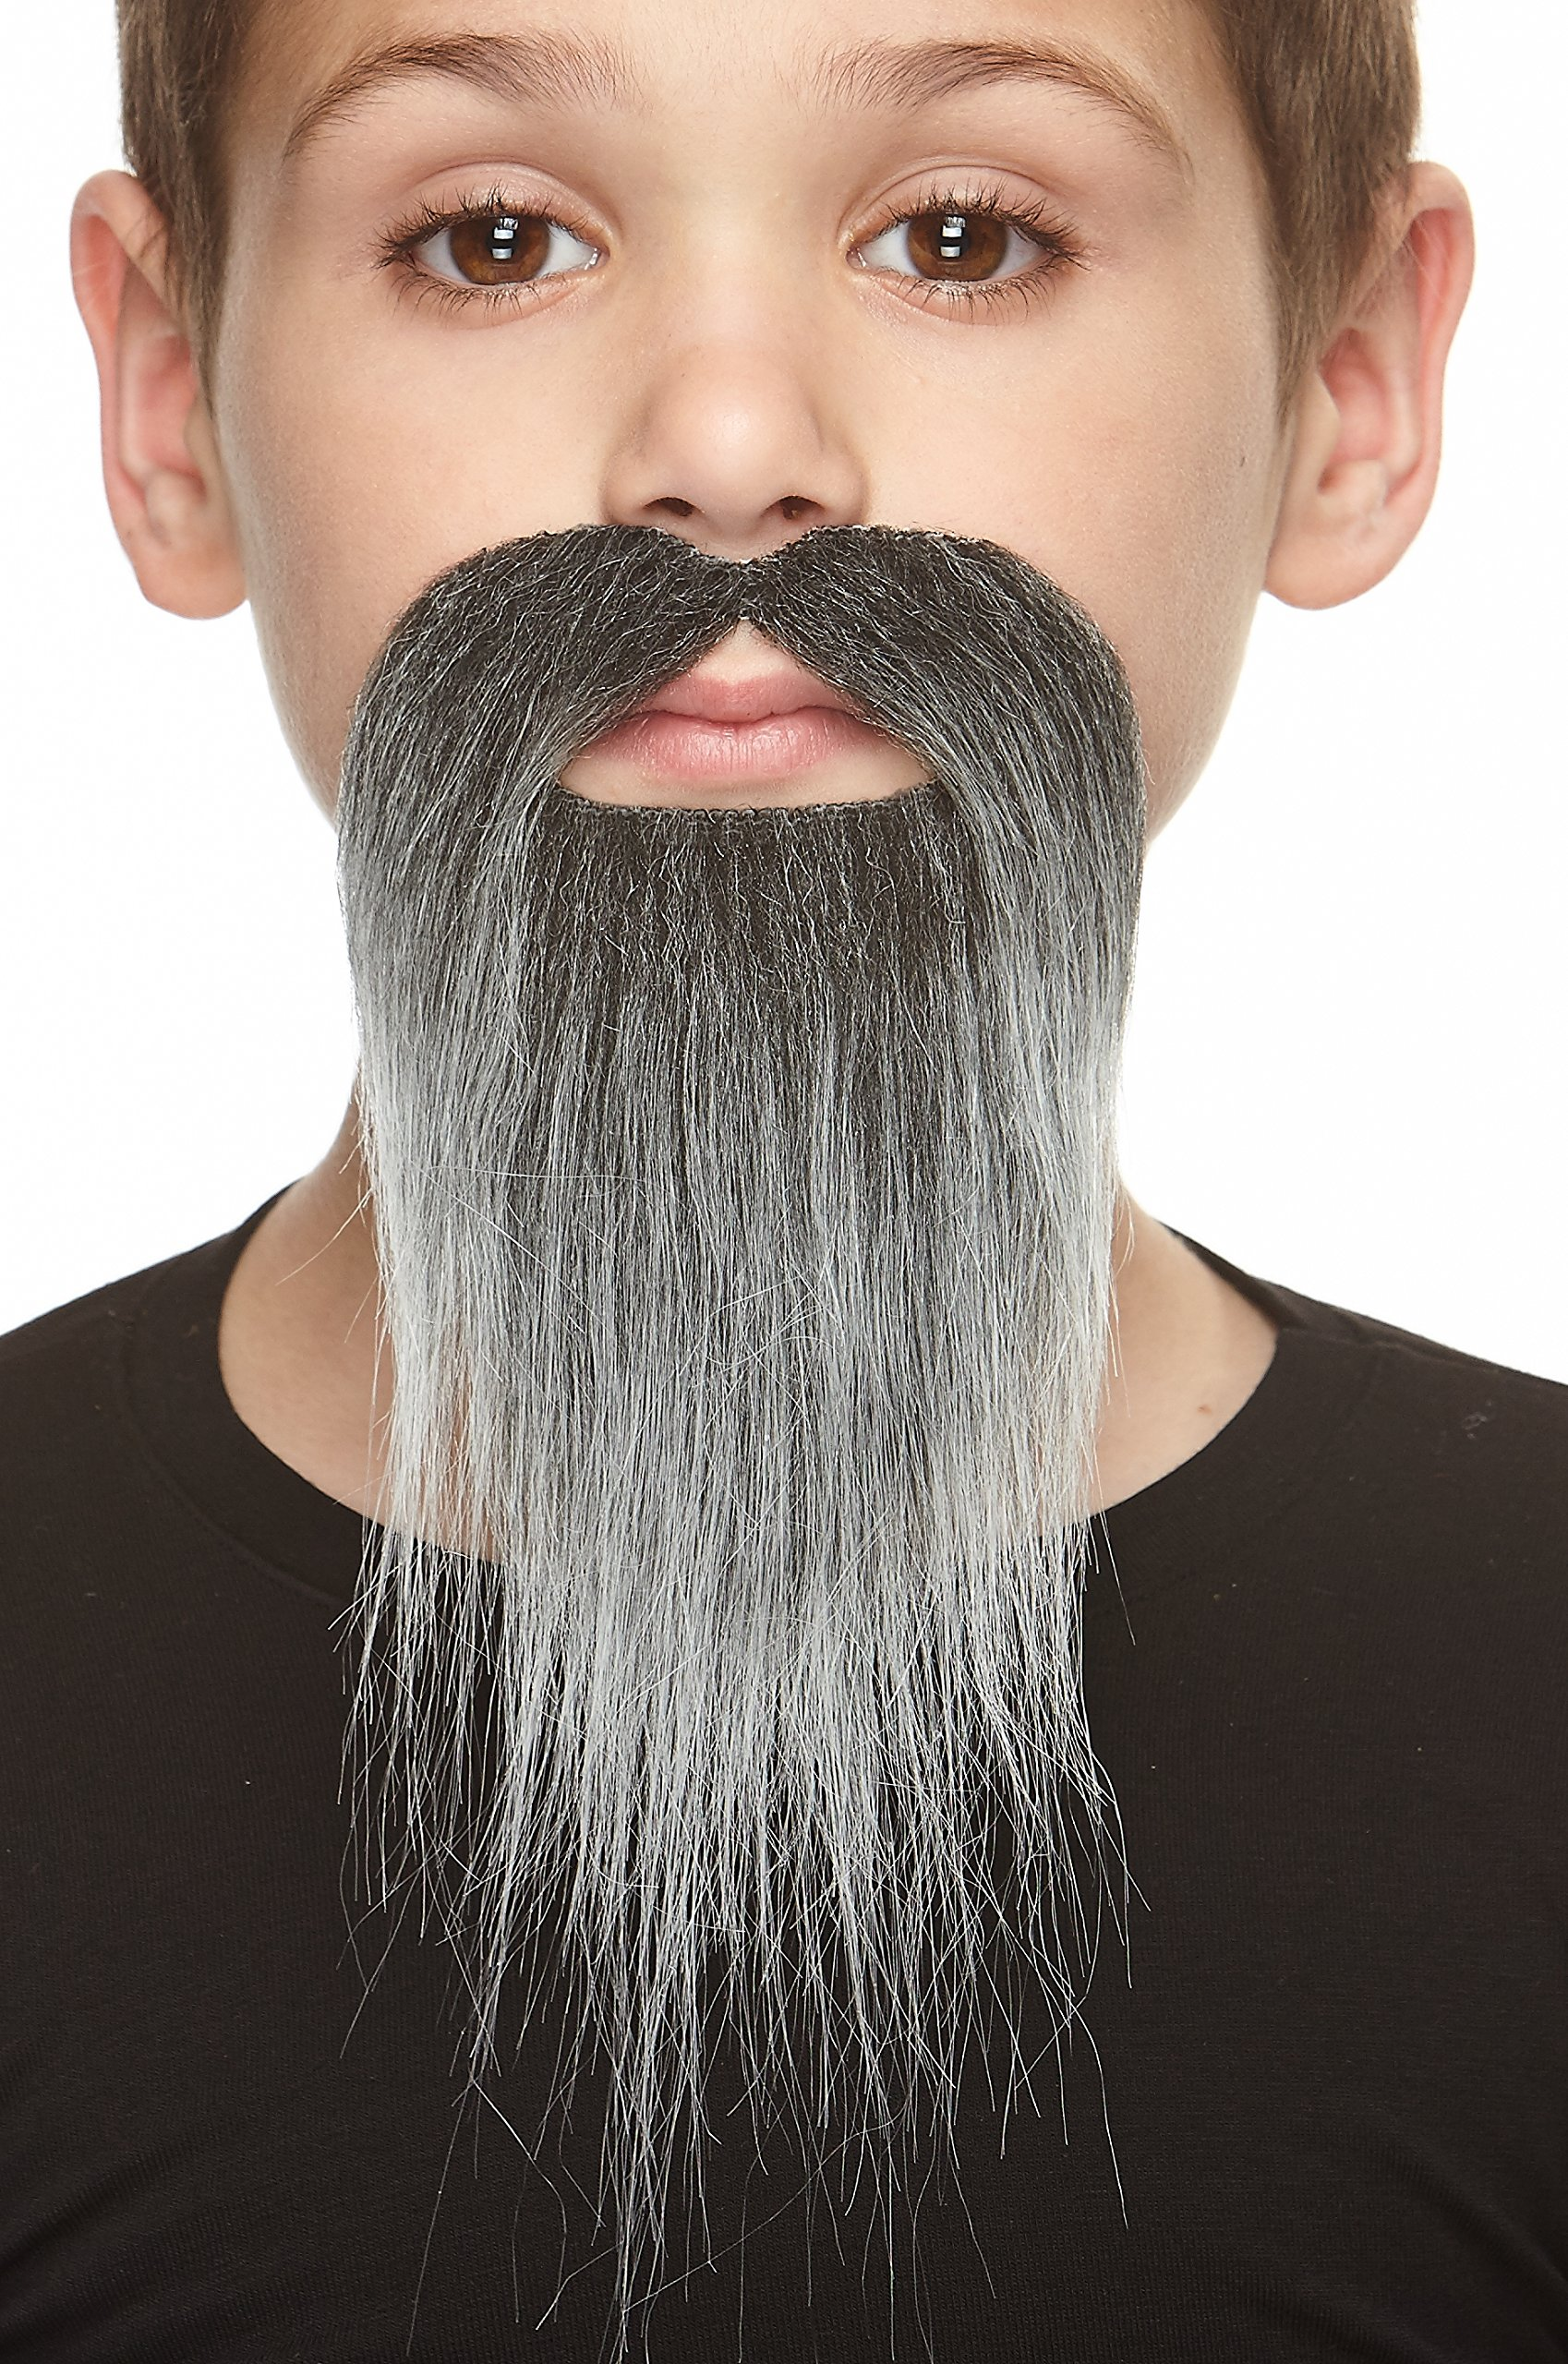 Mustaches Self Adhesive, Novelty, Fake, Small Ducktail Beard, Salt and Pepper Color